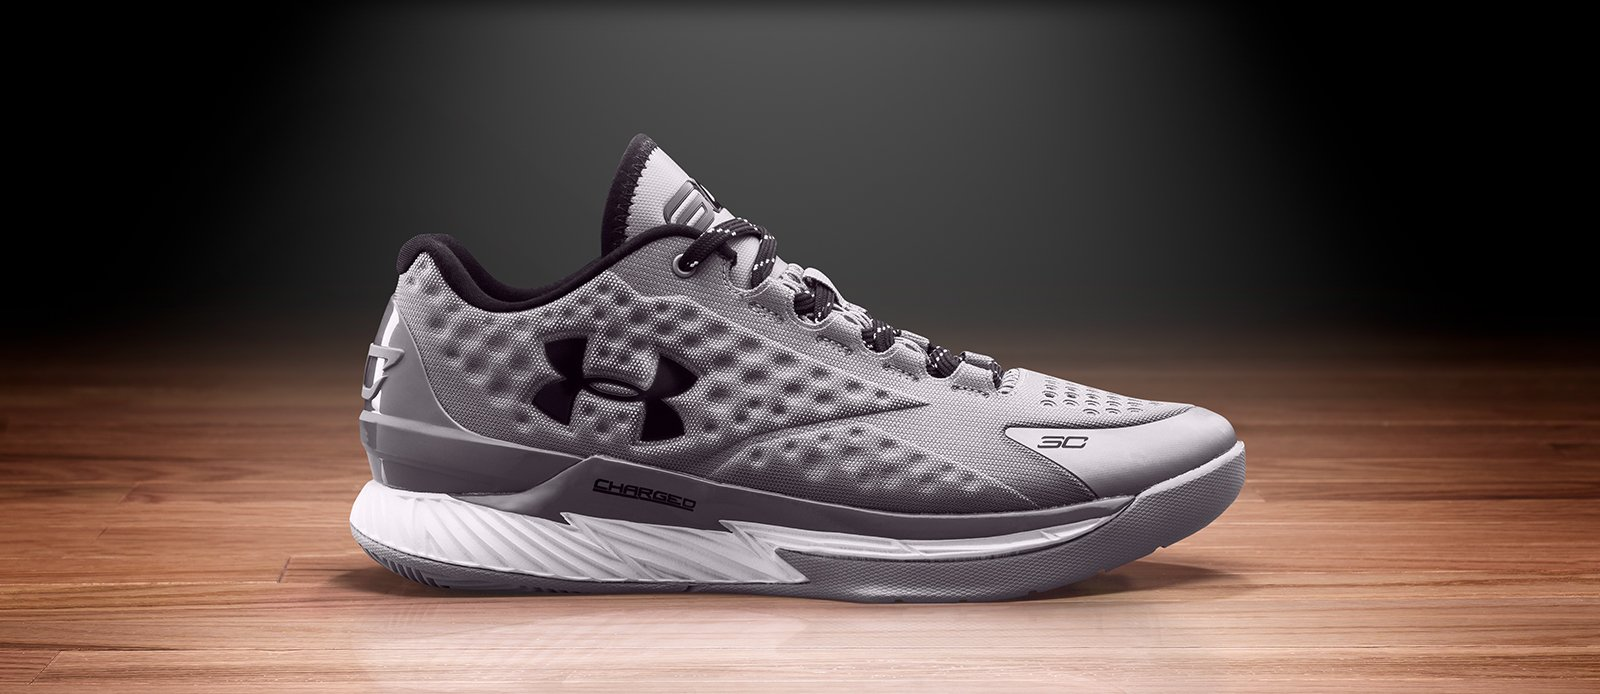 Under Armour Curry One Low  Two-A-Days  Pack - Available Now ... 63b10f4dd9dd